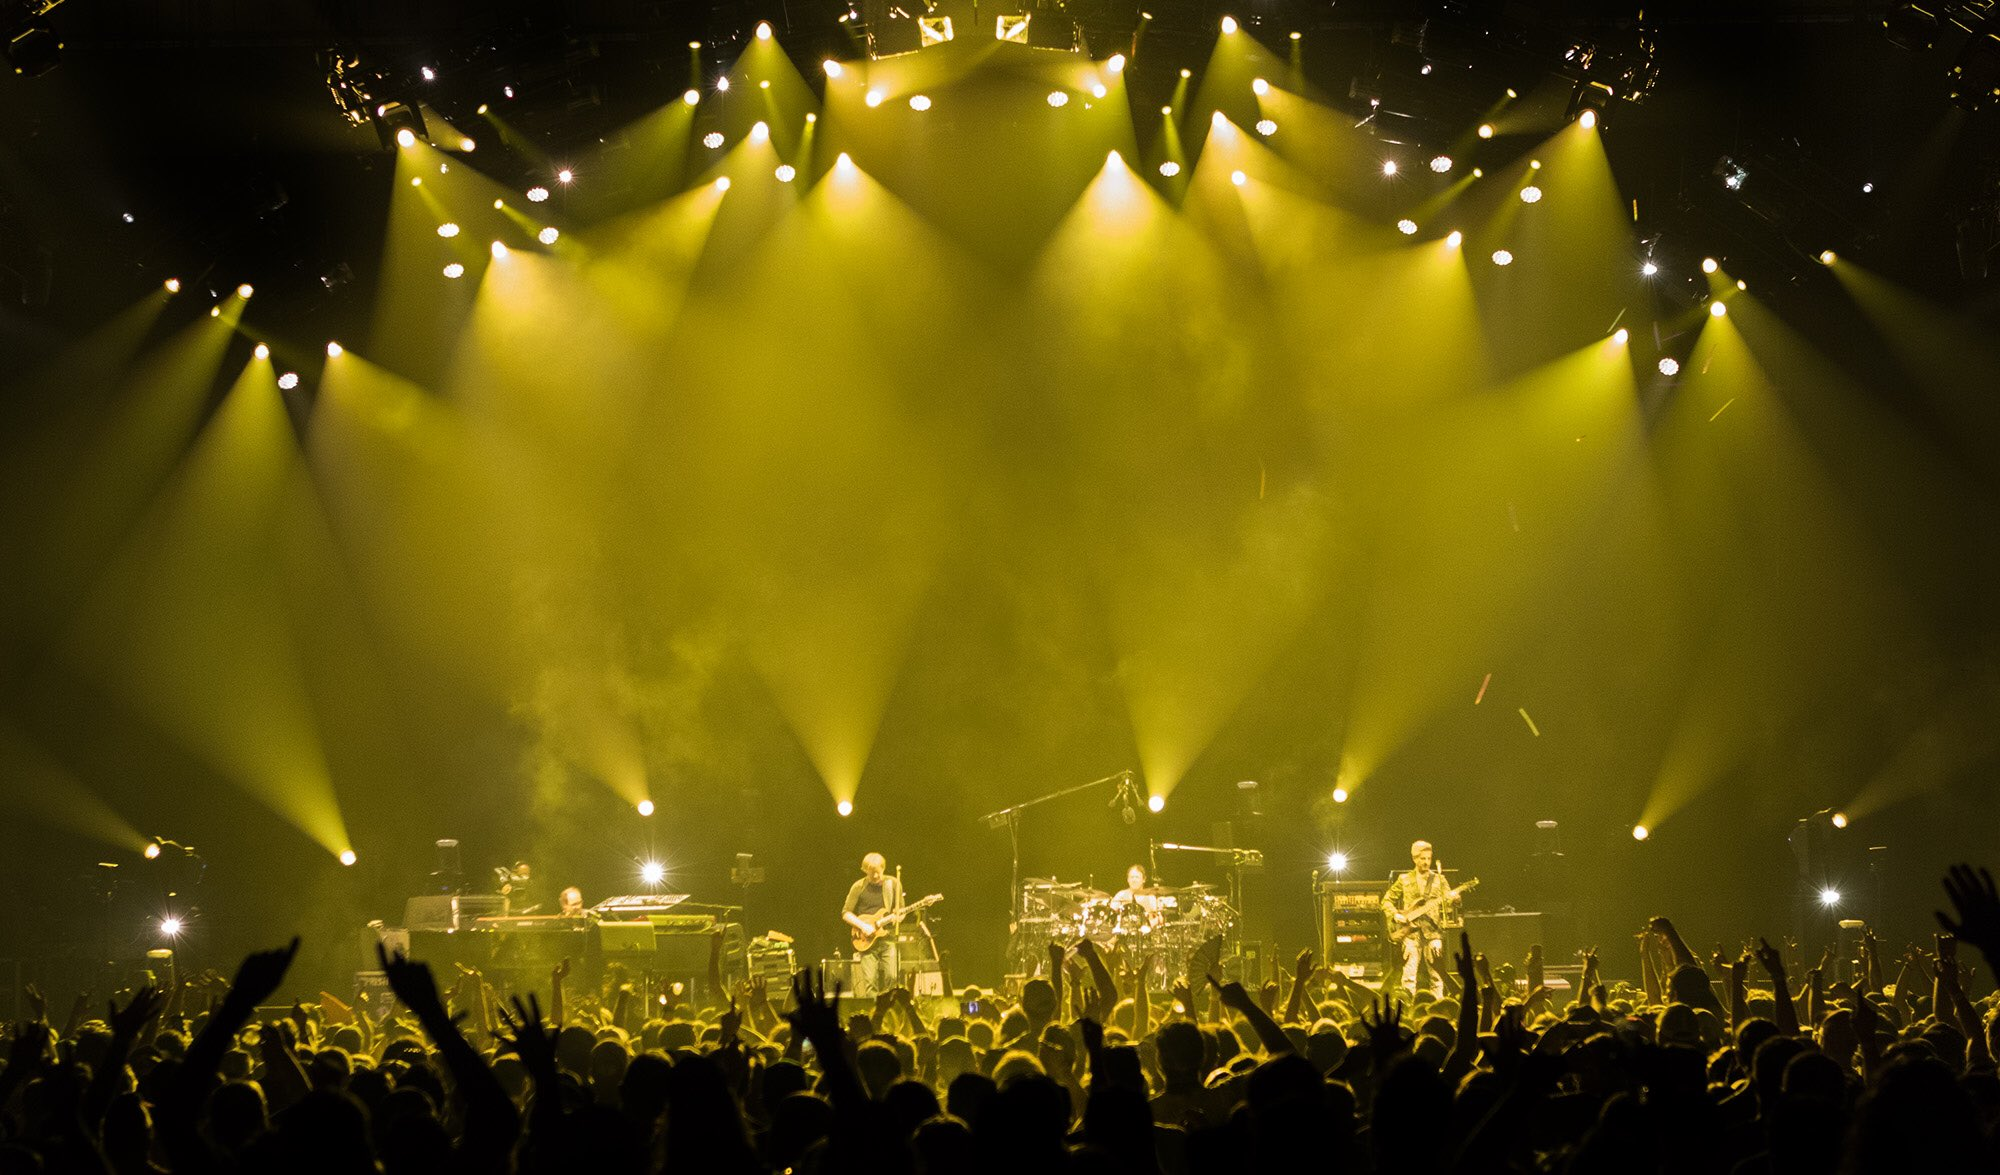 Photo © Phish